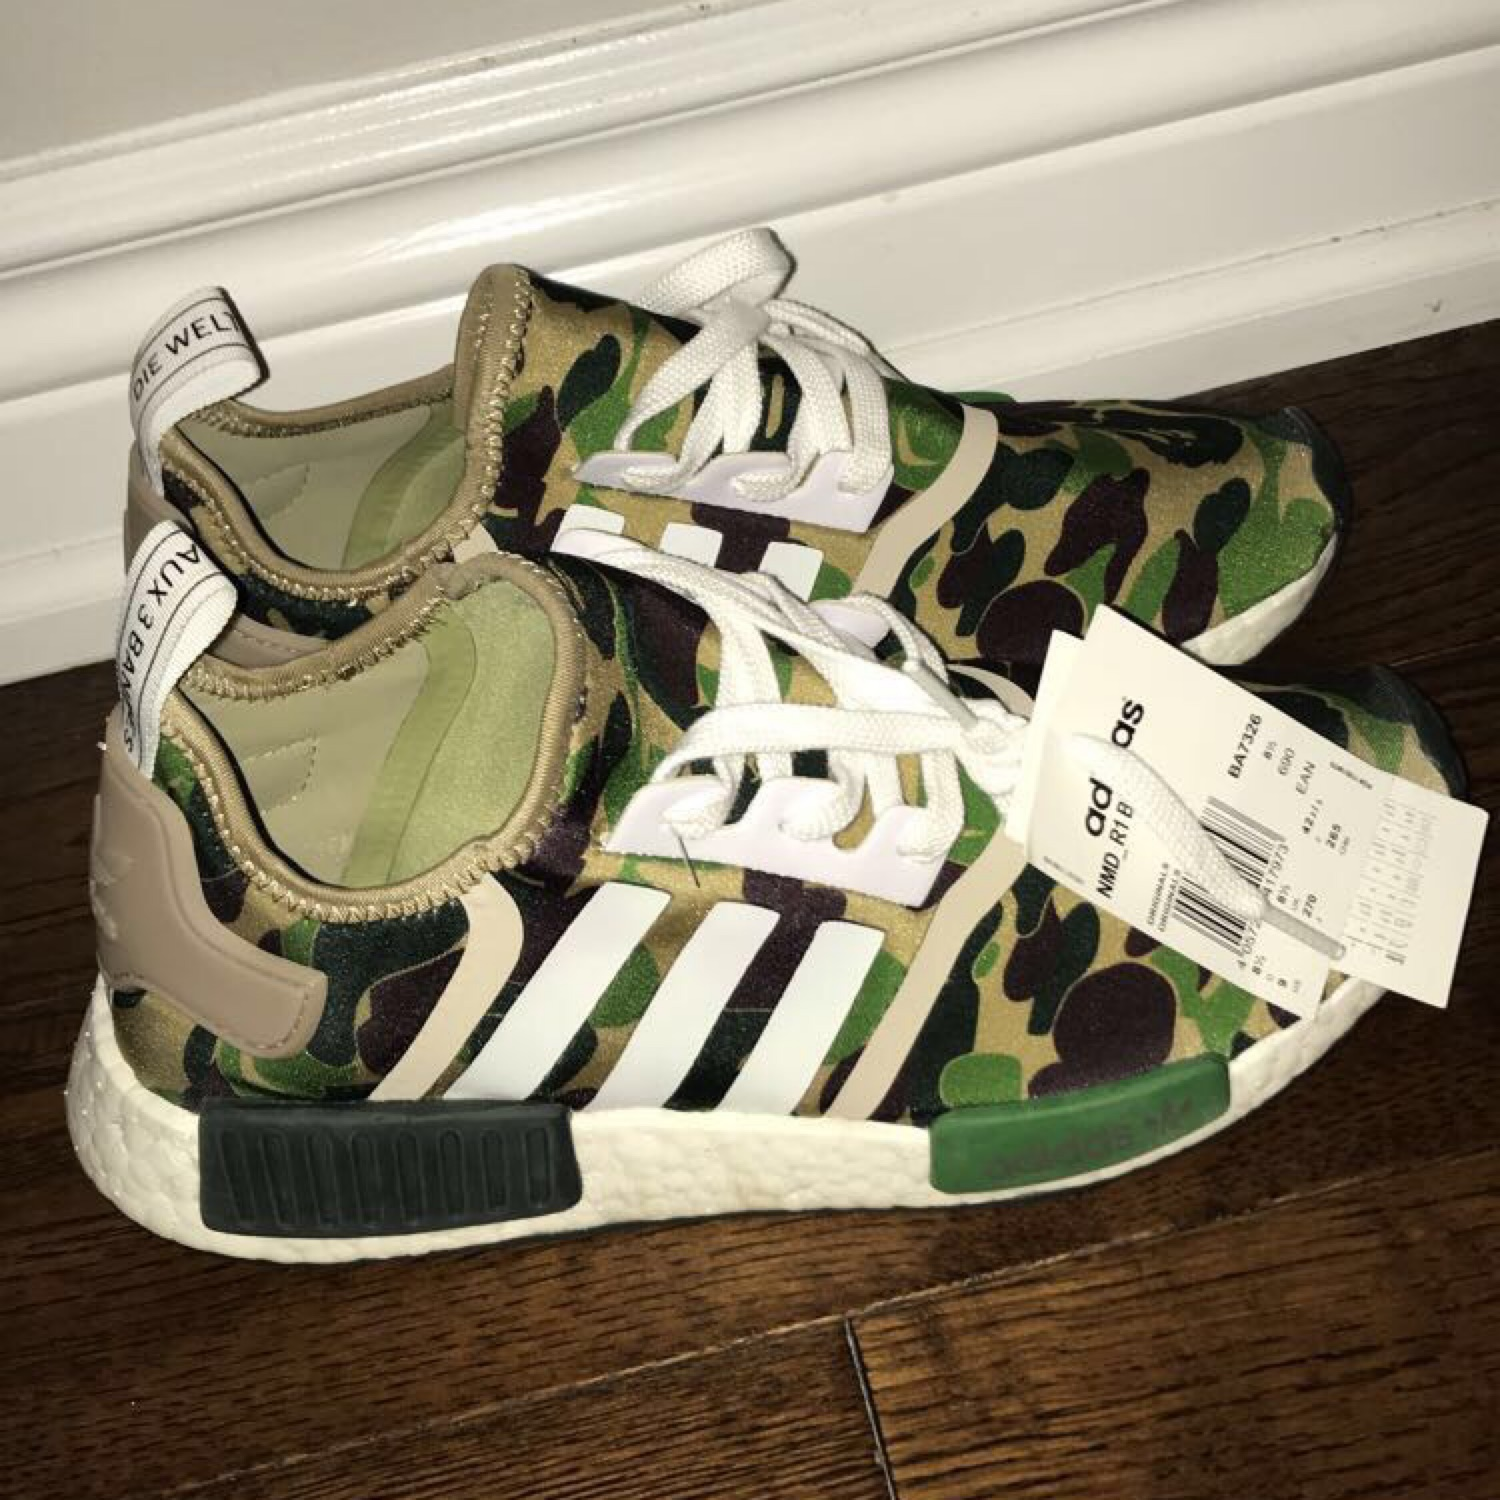 online store ff15f 0e7a2 Unauthenticated Bape X Adidas Nmd R1 Olive Camo